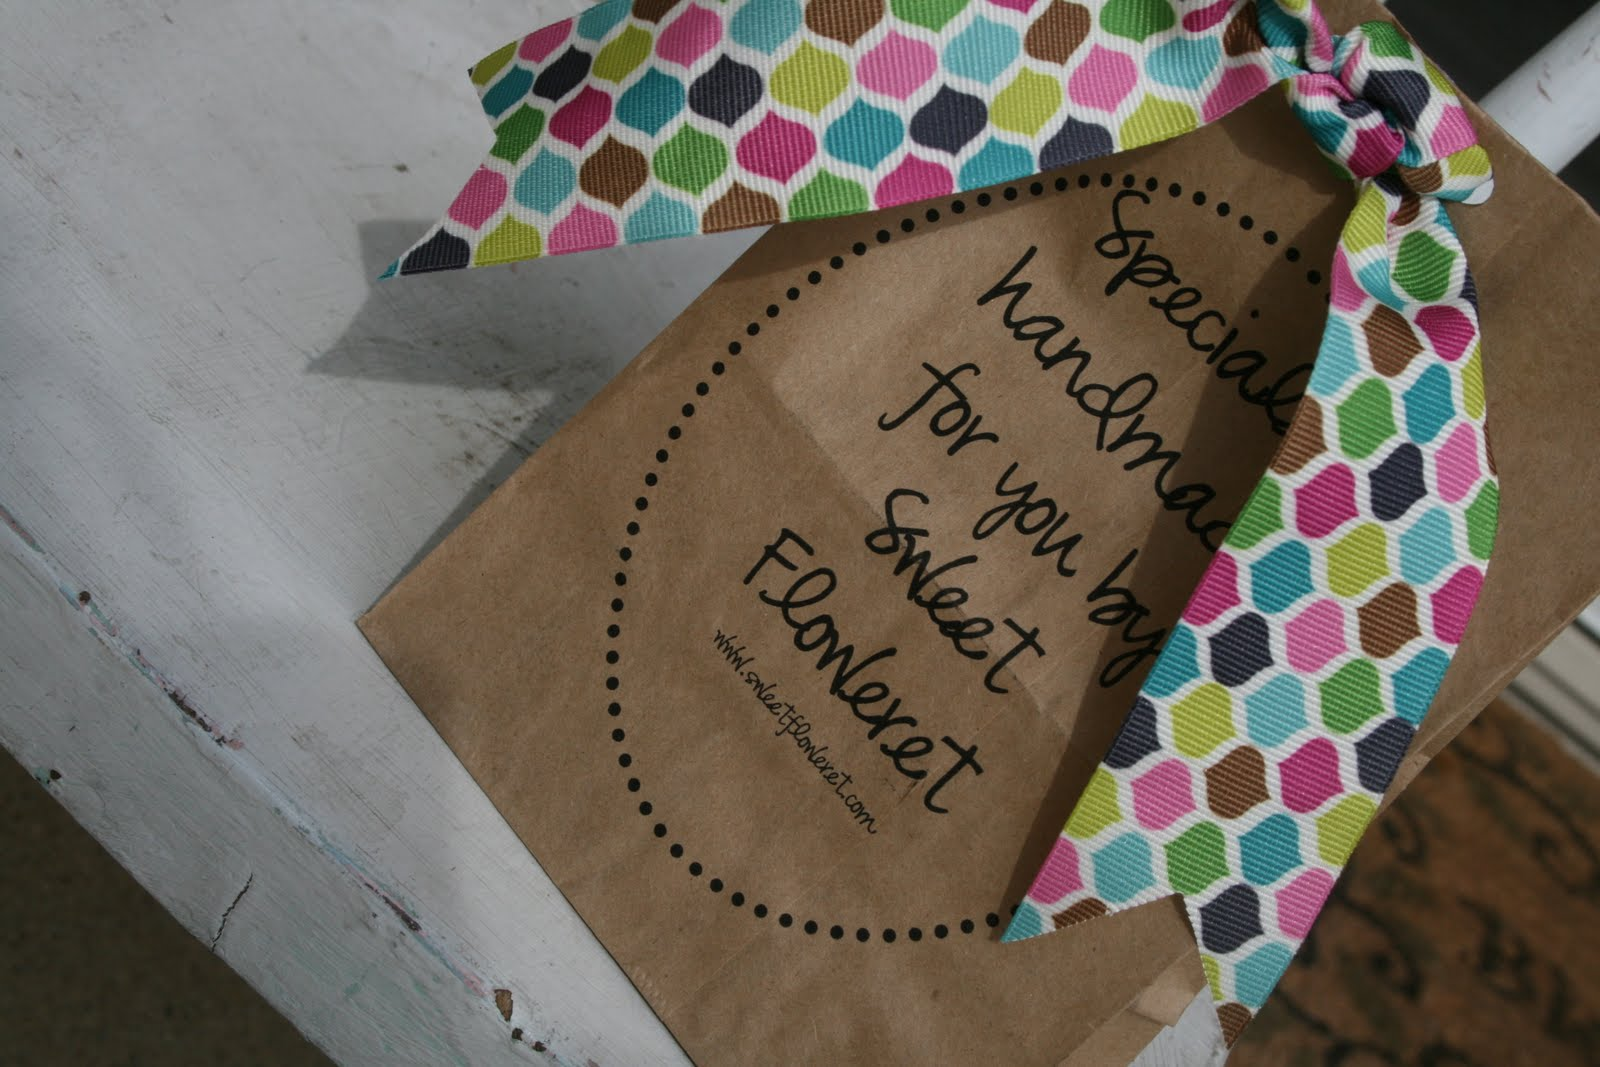 How to print on a paper bag